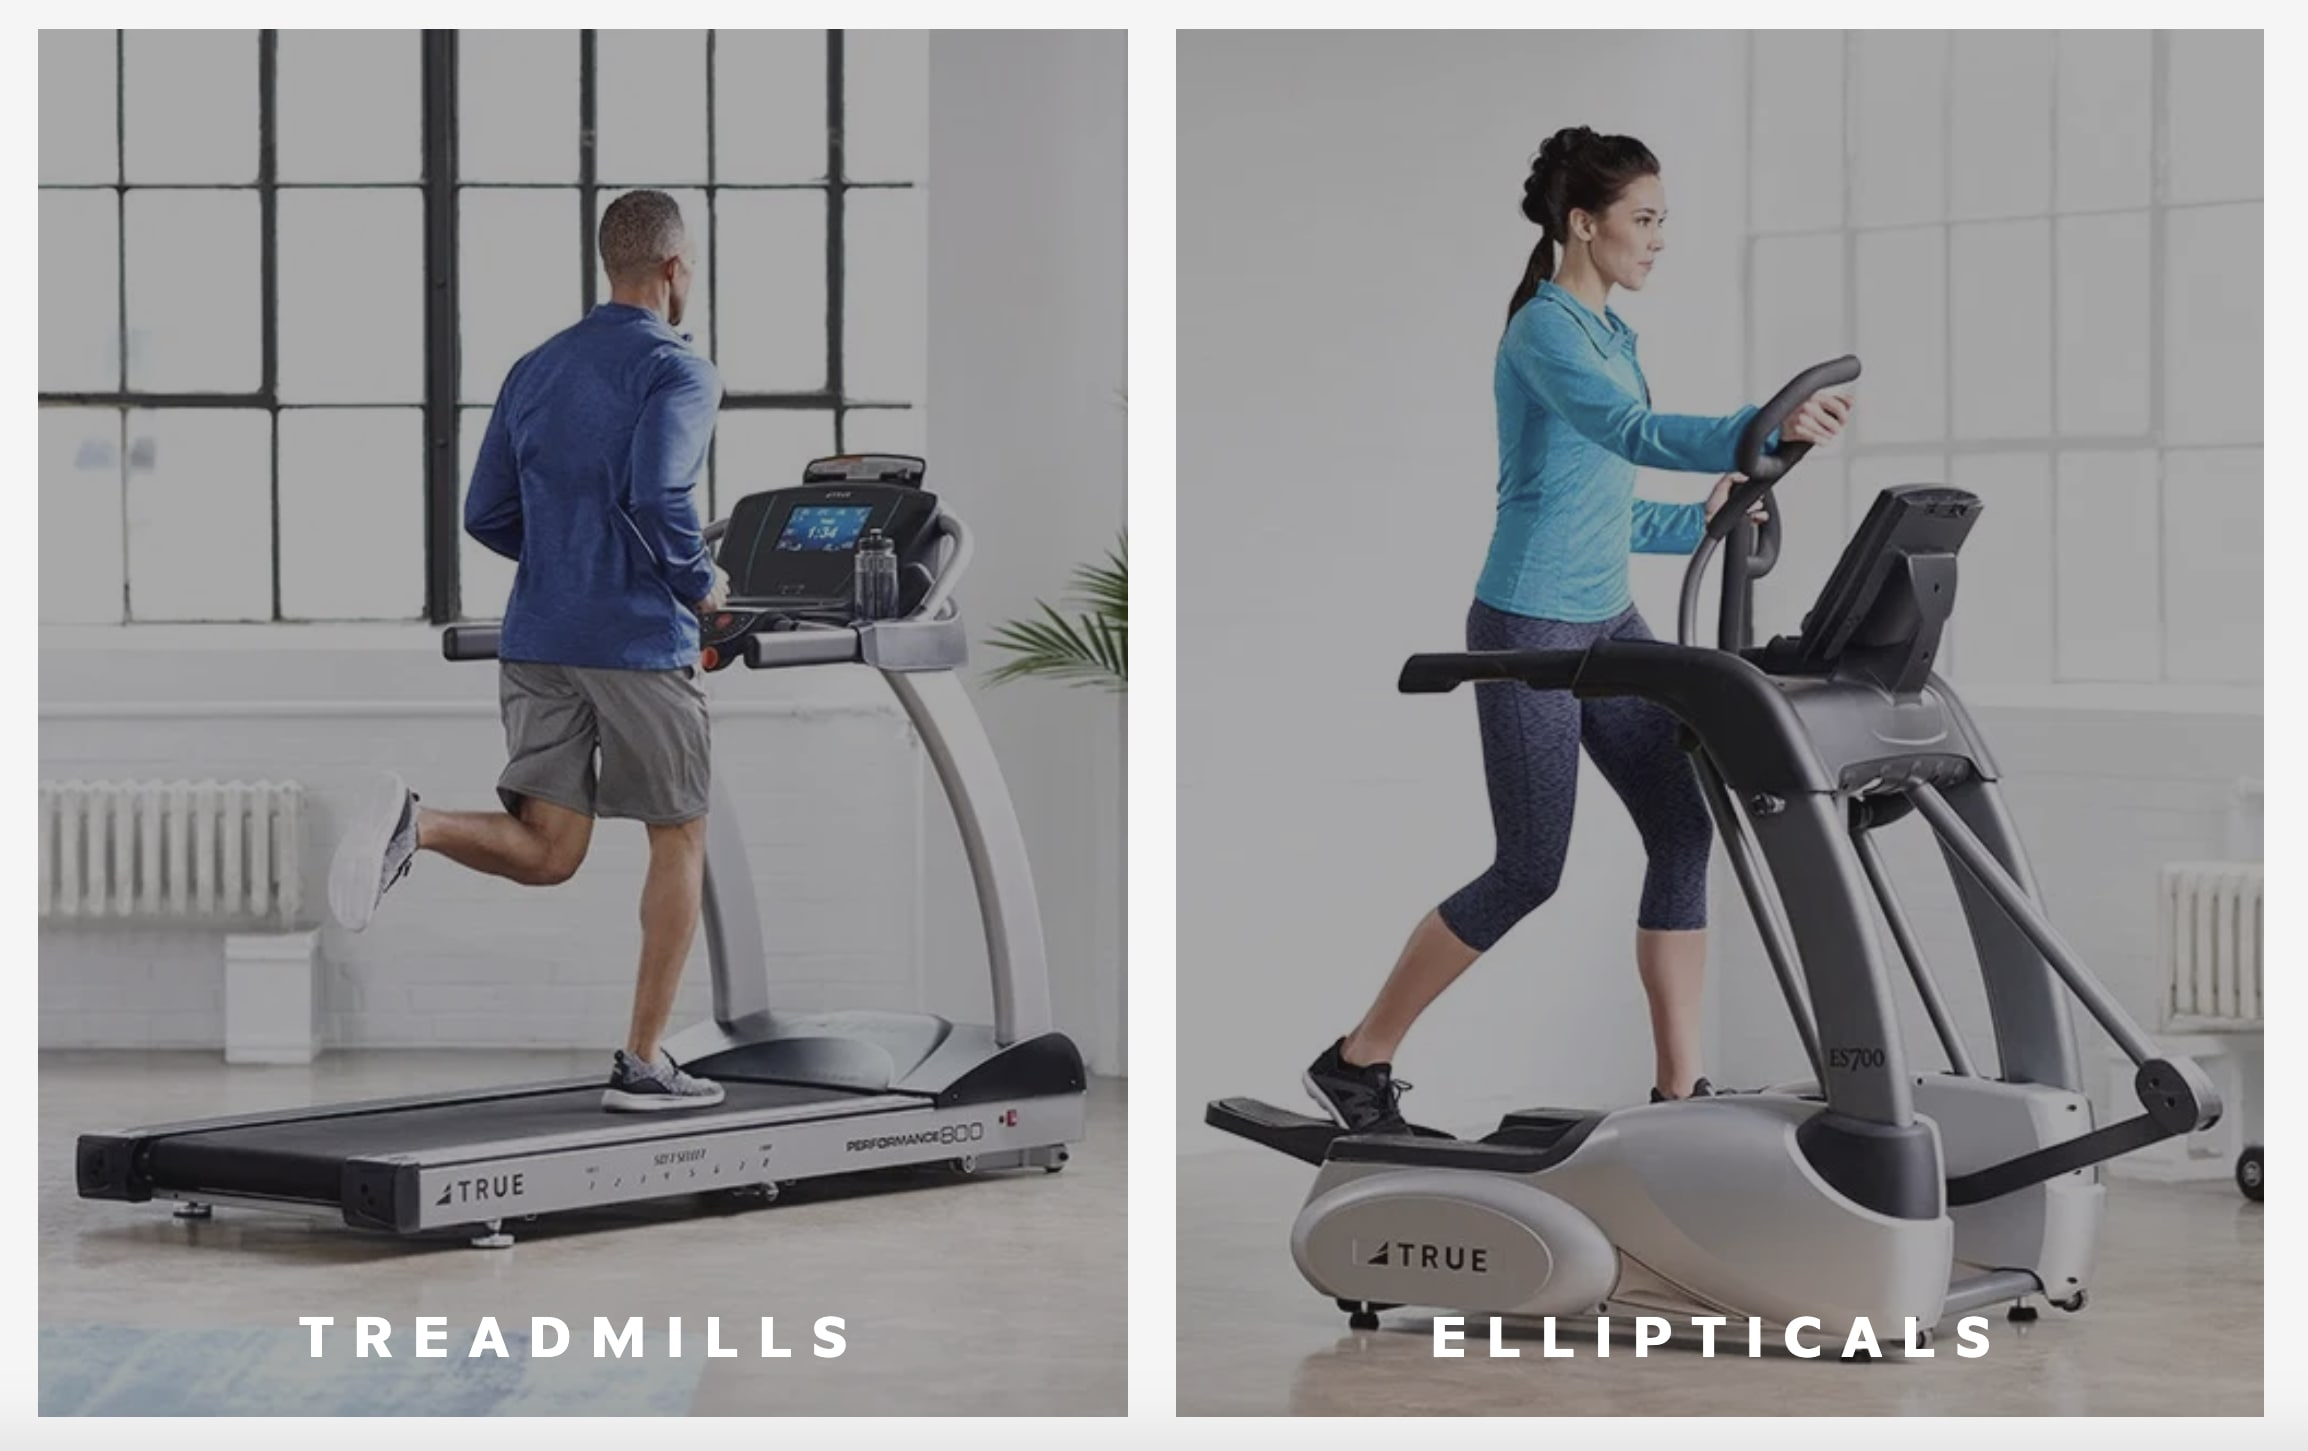 Treadmills Vs. Elliptical Trainer for Home Gym